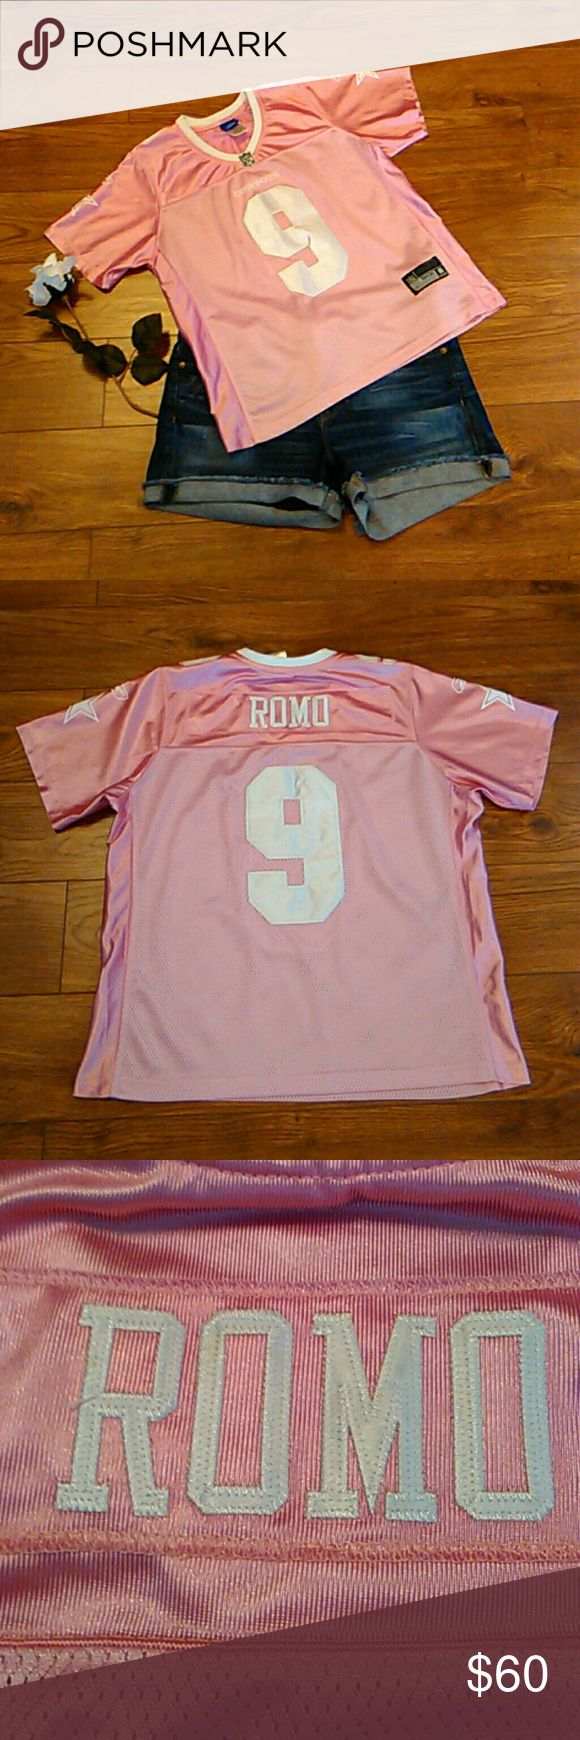 "Dallas Cowboys Romo Pink Jersey Top Size L Dallas Cowboys Tony Romo 9 Pink RBK Jersey Top Size L Girls  Room & 9 Patches are Sewed on Dallas Cowboys Star, Reebok Symbol & 9 decals on arms and shoulders. NFL Reebok   88% Nylon 12% Polyester  Aprox Measurements Taken Flat  Shoulders: 14.5"" Bust: 20.5""(41) Length: 23""  In Pre-owned Condition With No Stains Or Holes  Smoke and Pet Free Home  Please Check Out My Other Items  #125 Reebok Shirts & Tops Tees - Short Sleeve"